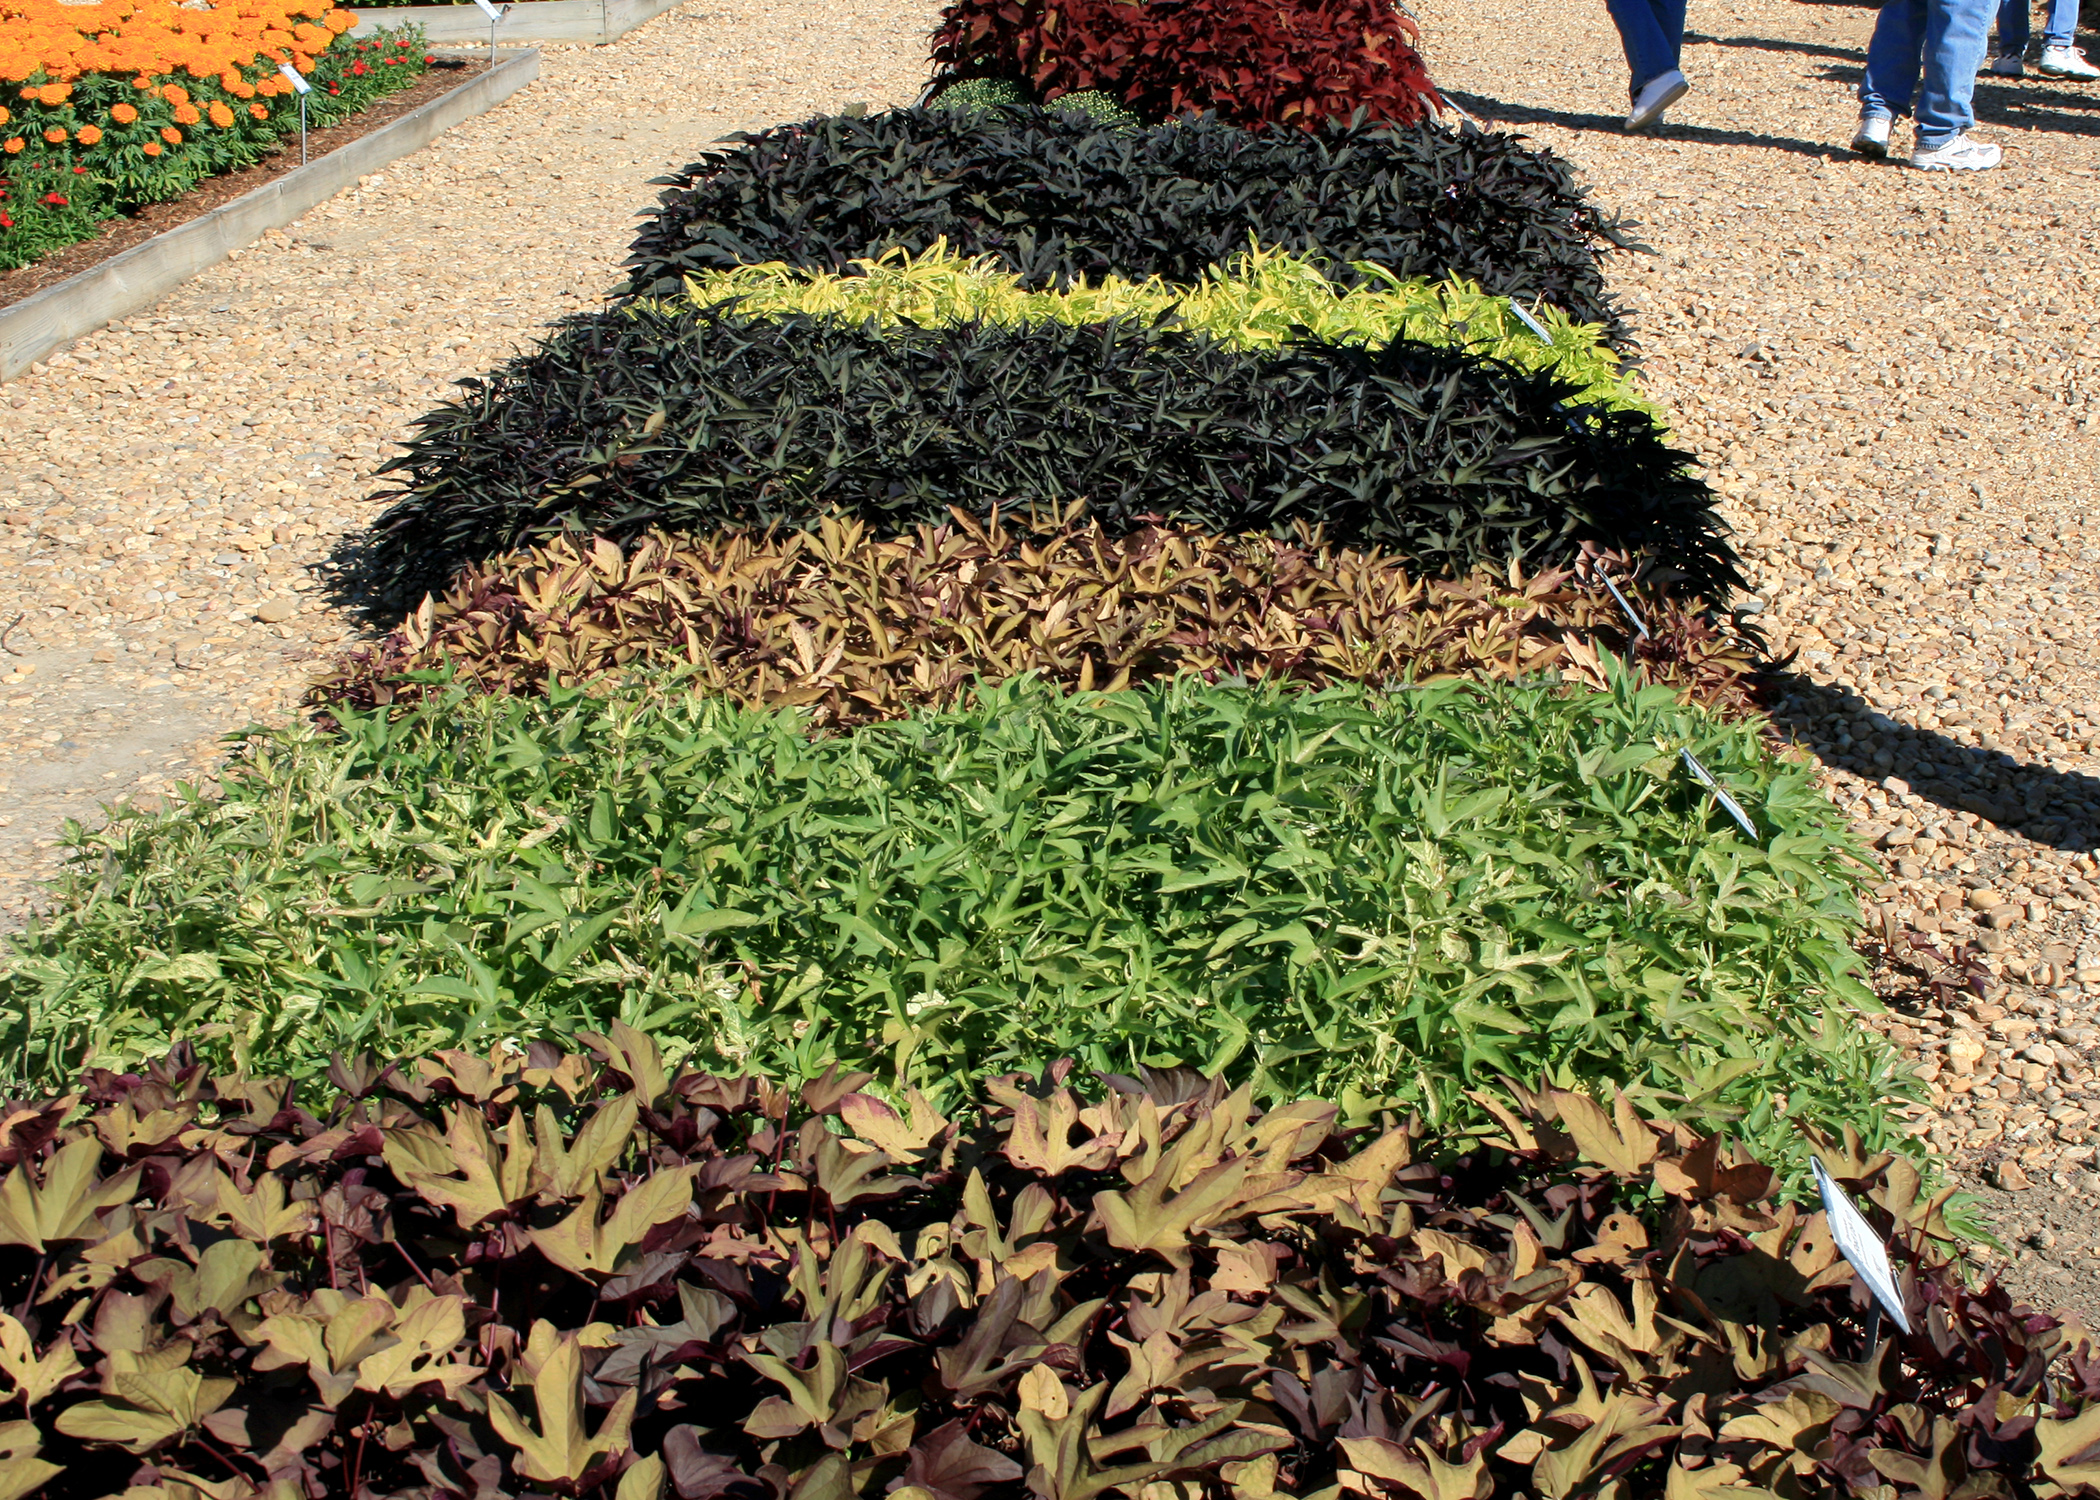 The Ornamental Sweet Potato Is A Go To Choice For Large Areas That Need Some